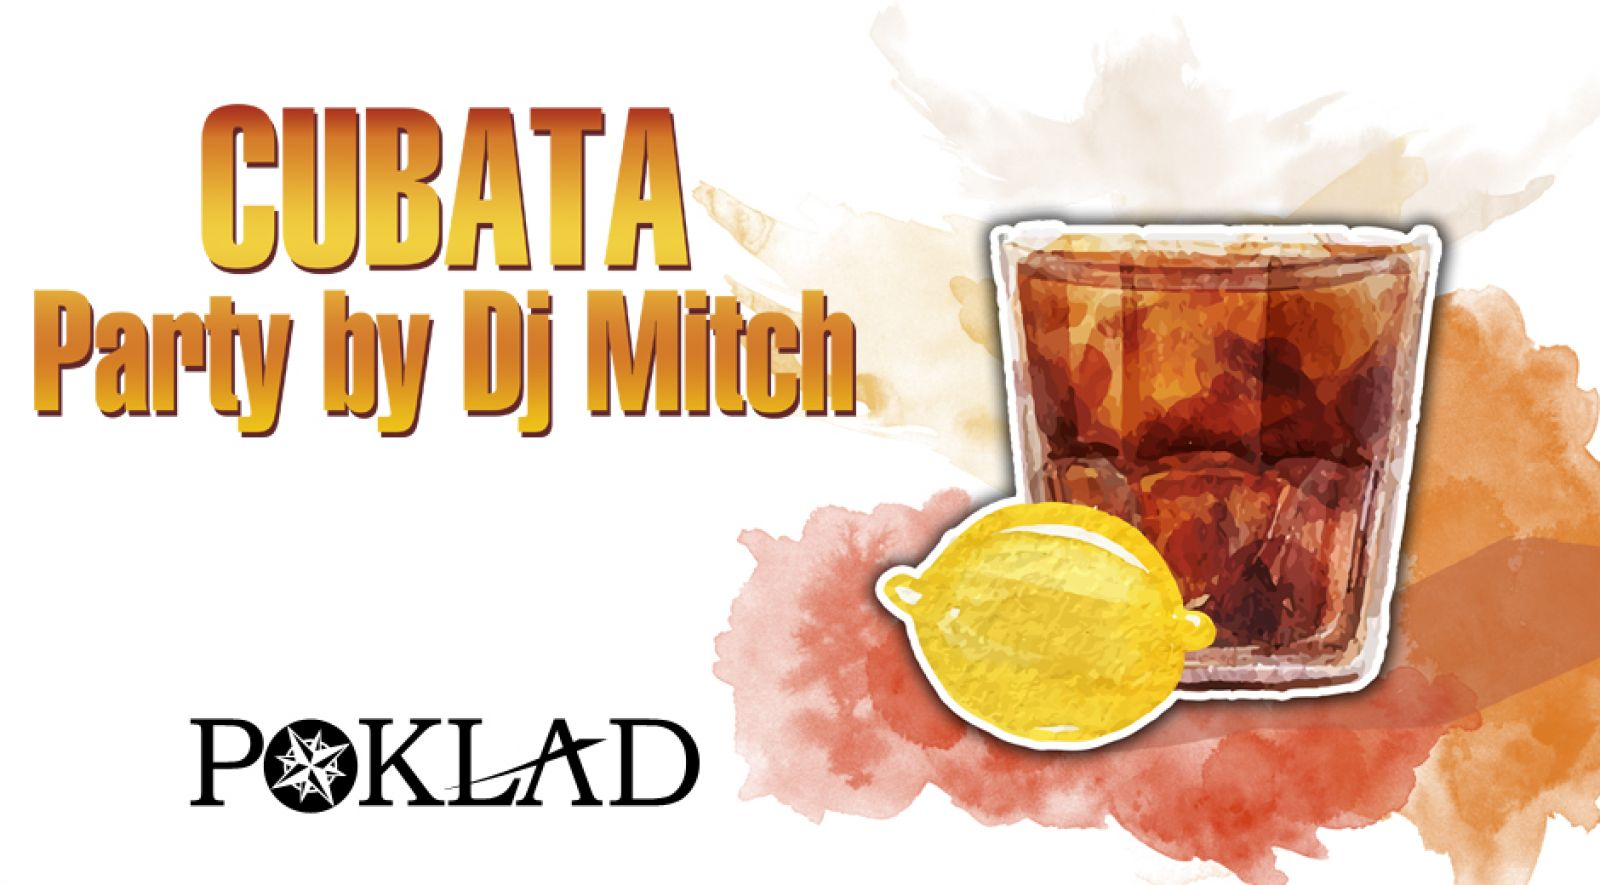 20.09 - Cubata - Black Cuba Libre Party by Dj Mitch